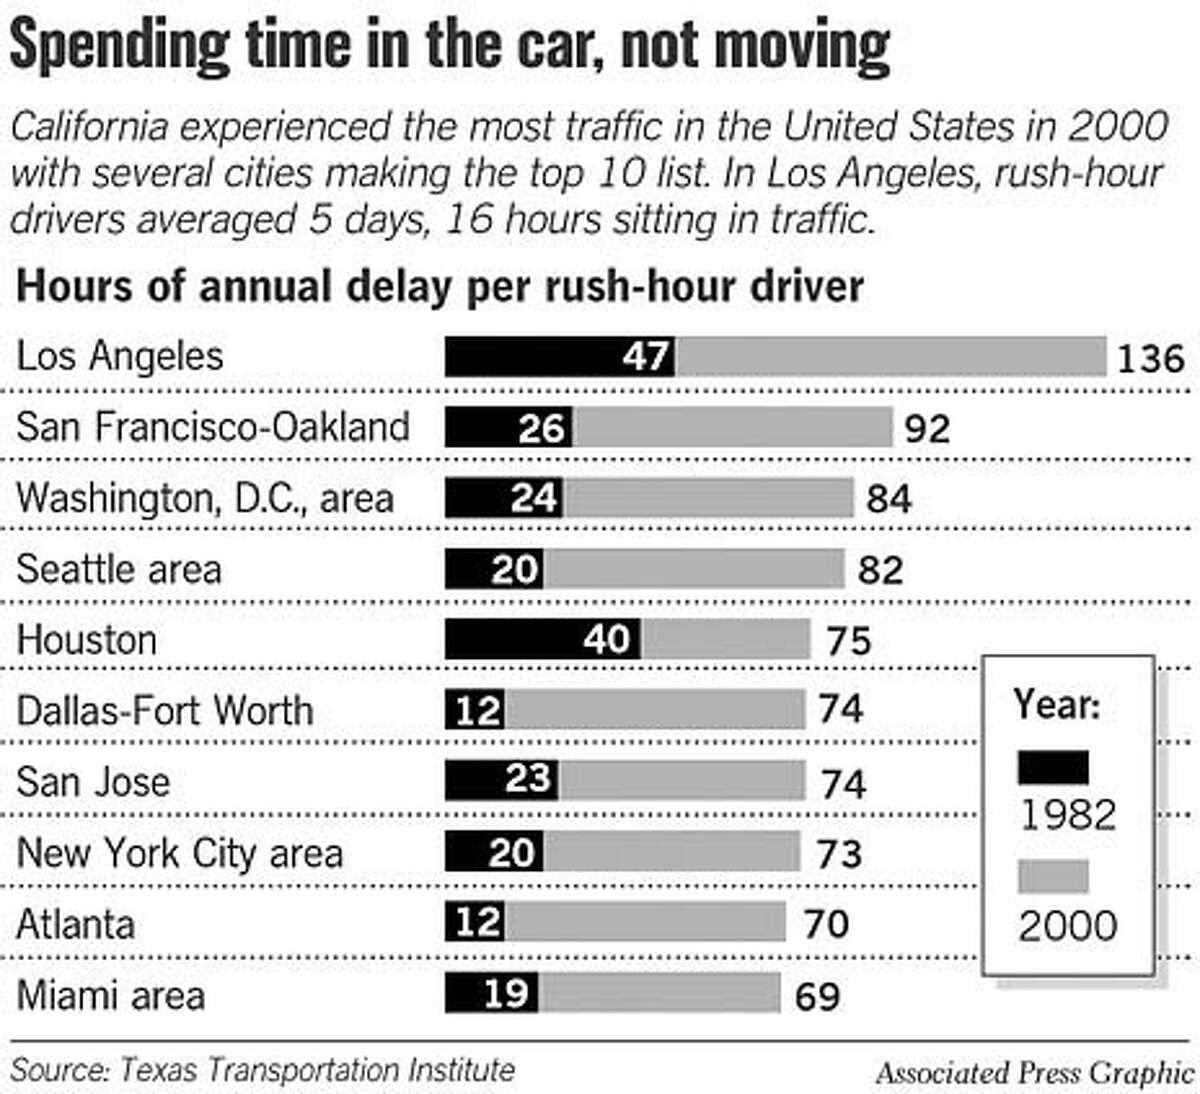 Spending Time In The Car, Not Moving. Chronicle Graphic